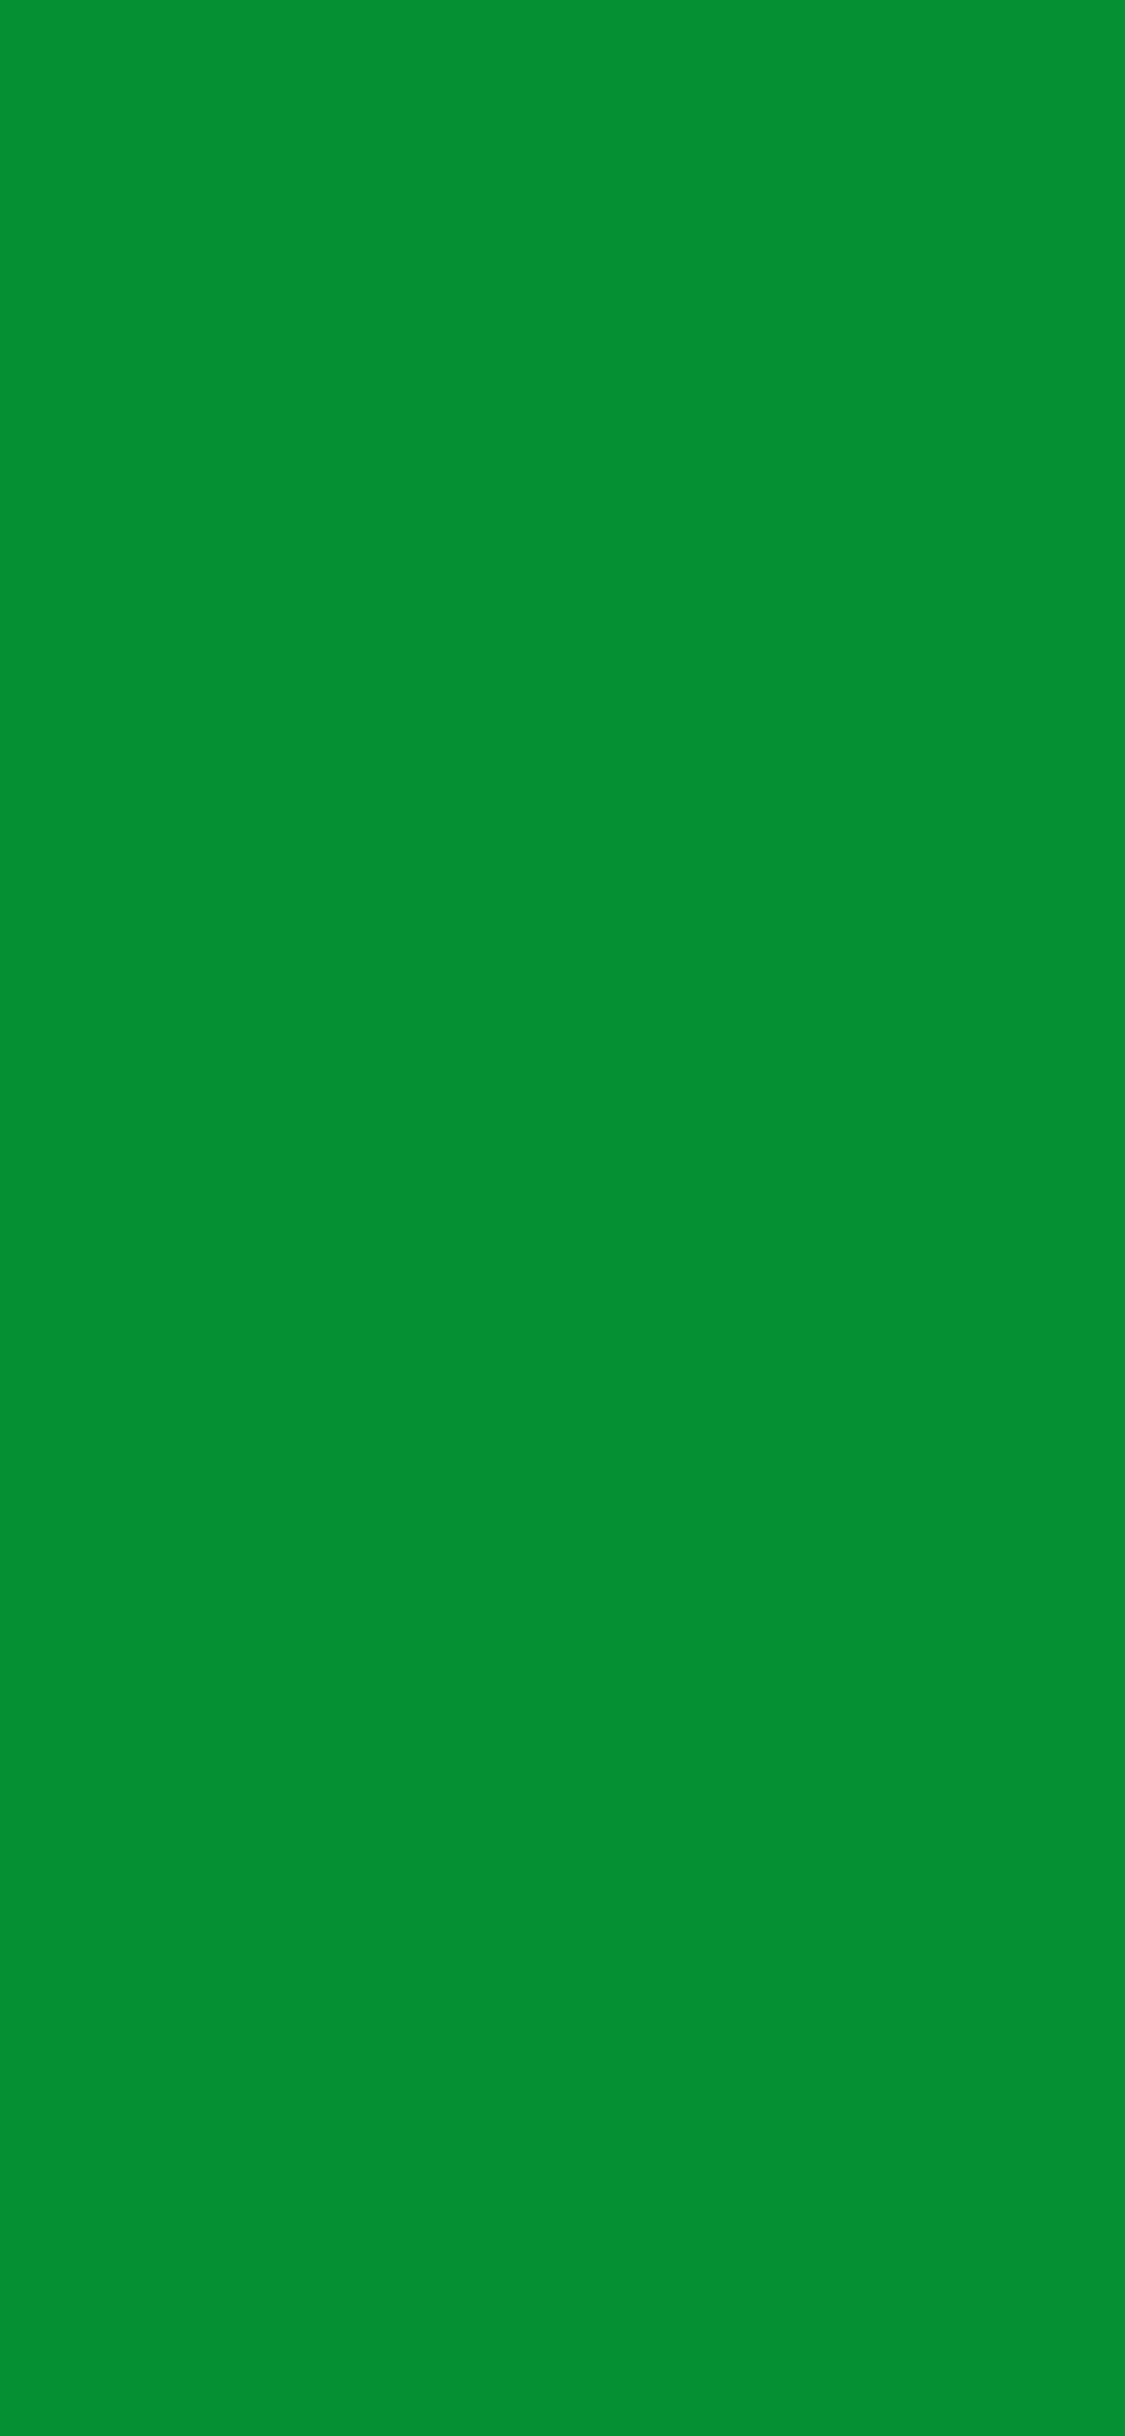 1125x2436 North Texas Green Solid Color Background